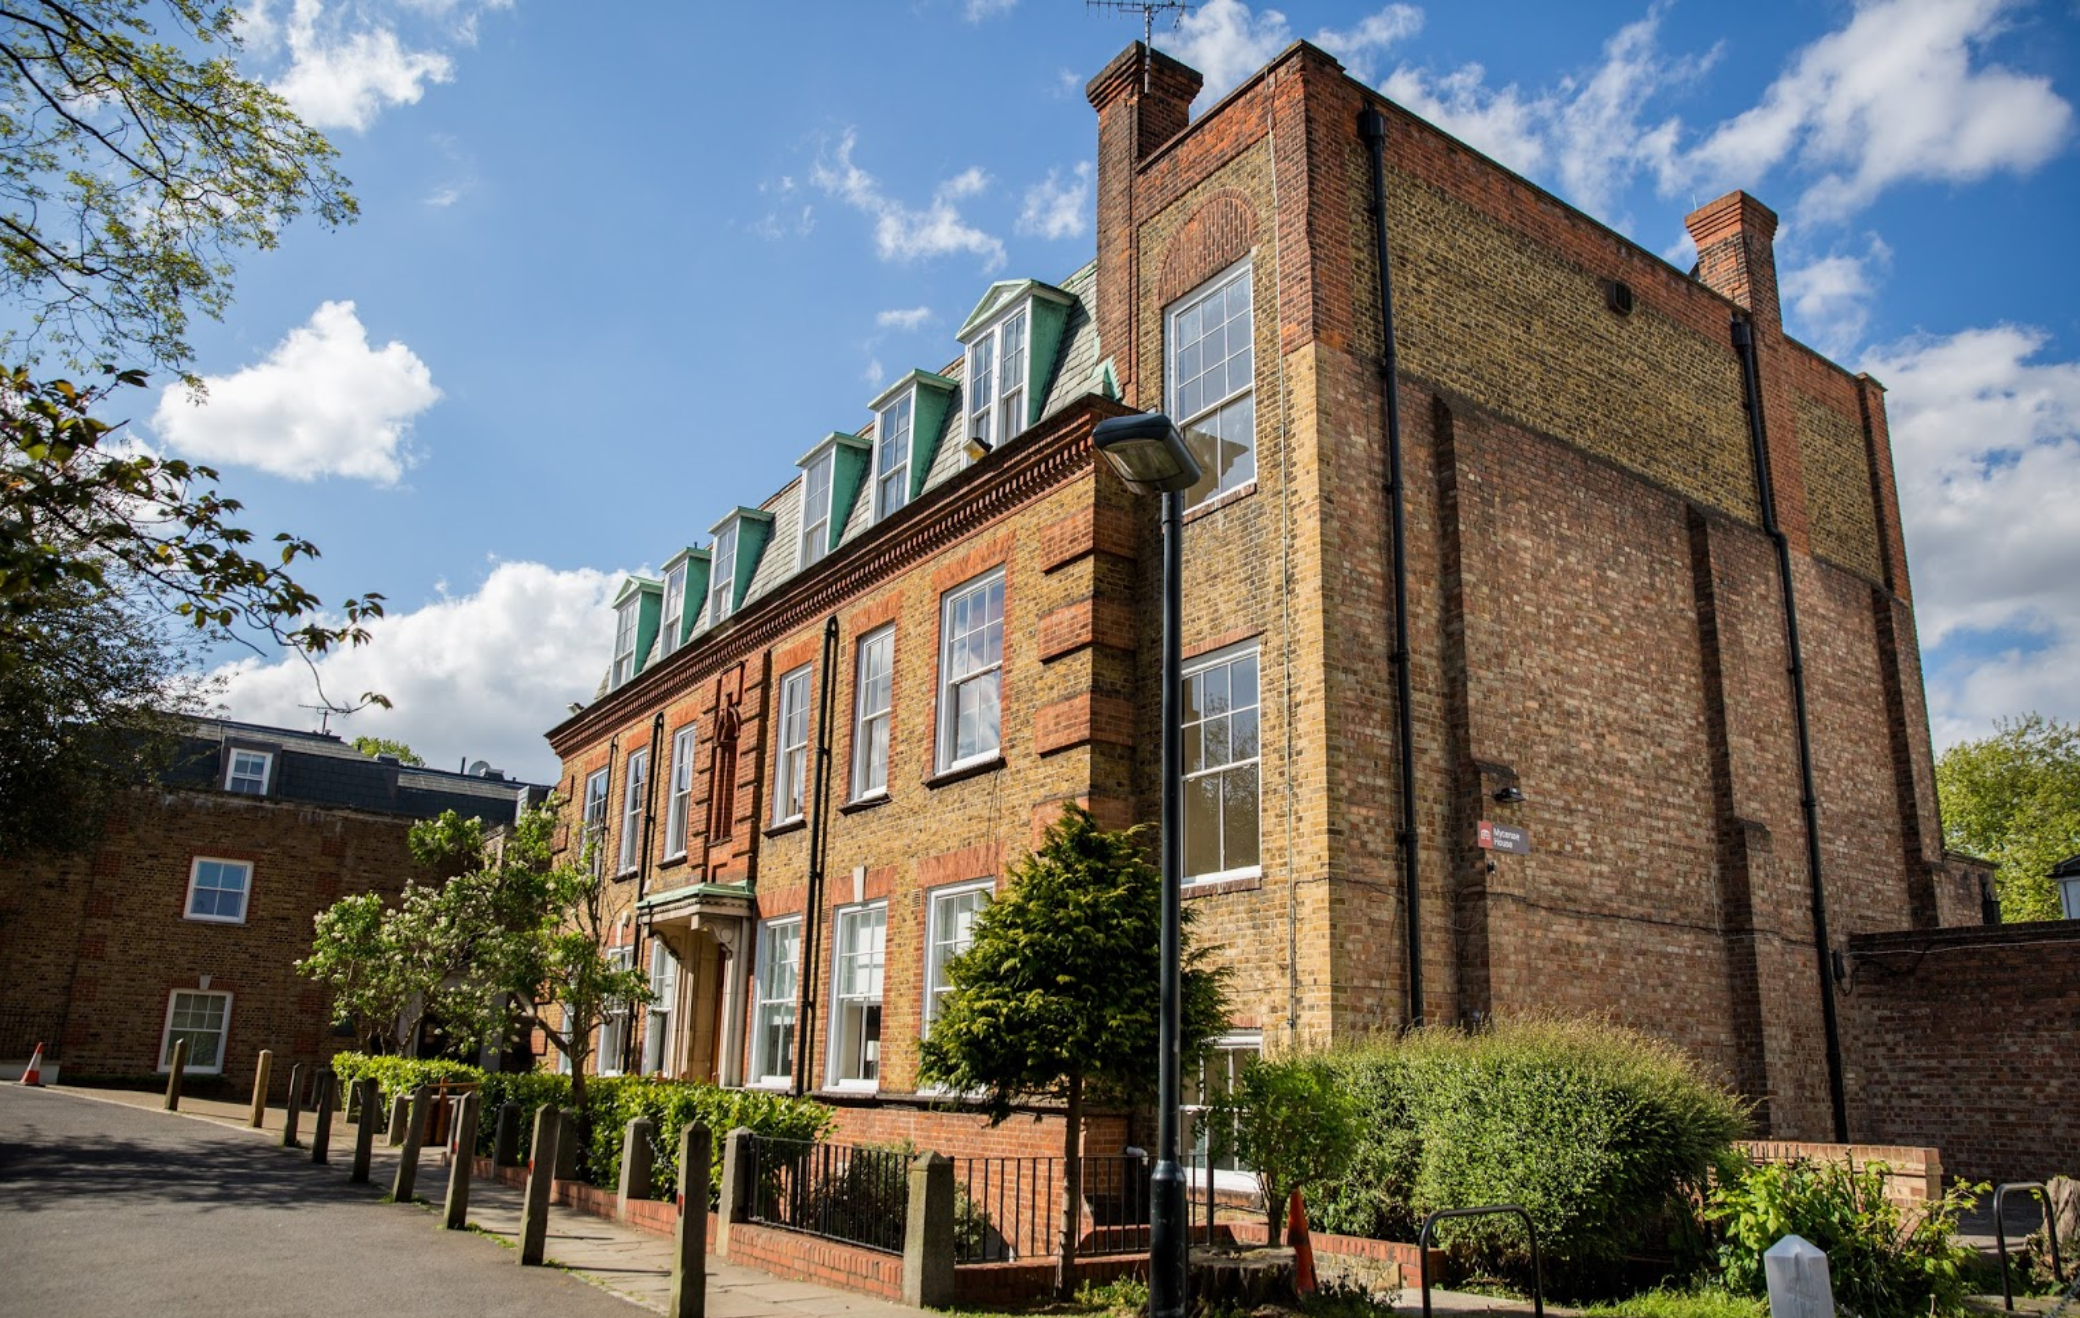 Mycenae House - Mycenae House is an historic building within the grounds of beautiful public gardens in the Blackheath Westcombe Ward in South East London.The House is a busy space with lots of family activities and events across its 23 rooms, hall and cafe/bar.